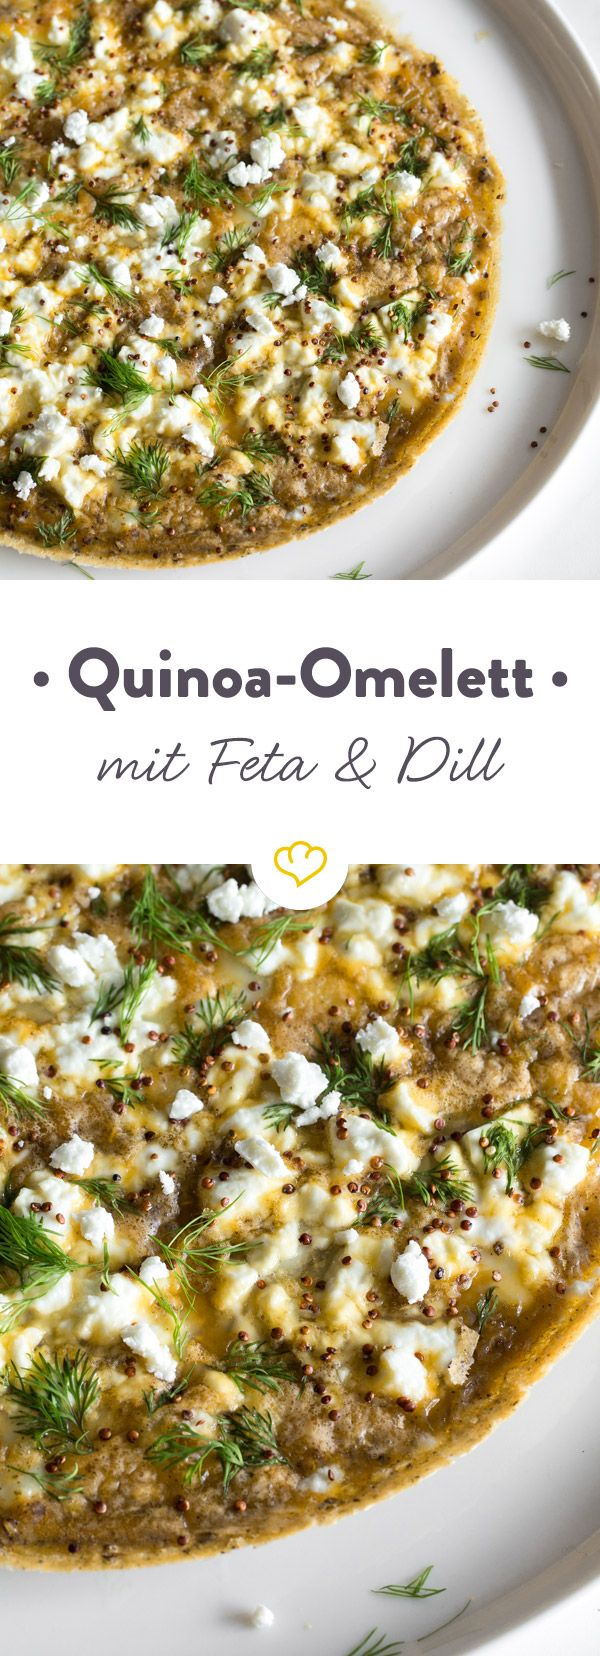 Photo of Fast and low carb: quinoa dill omelet with feta